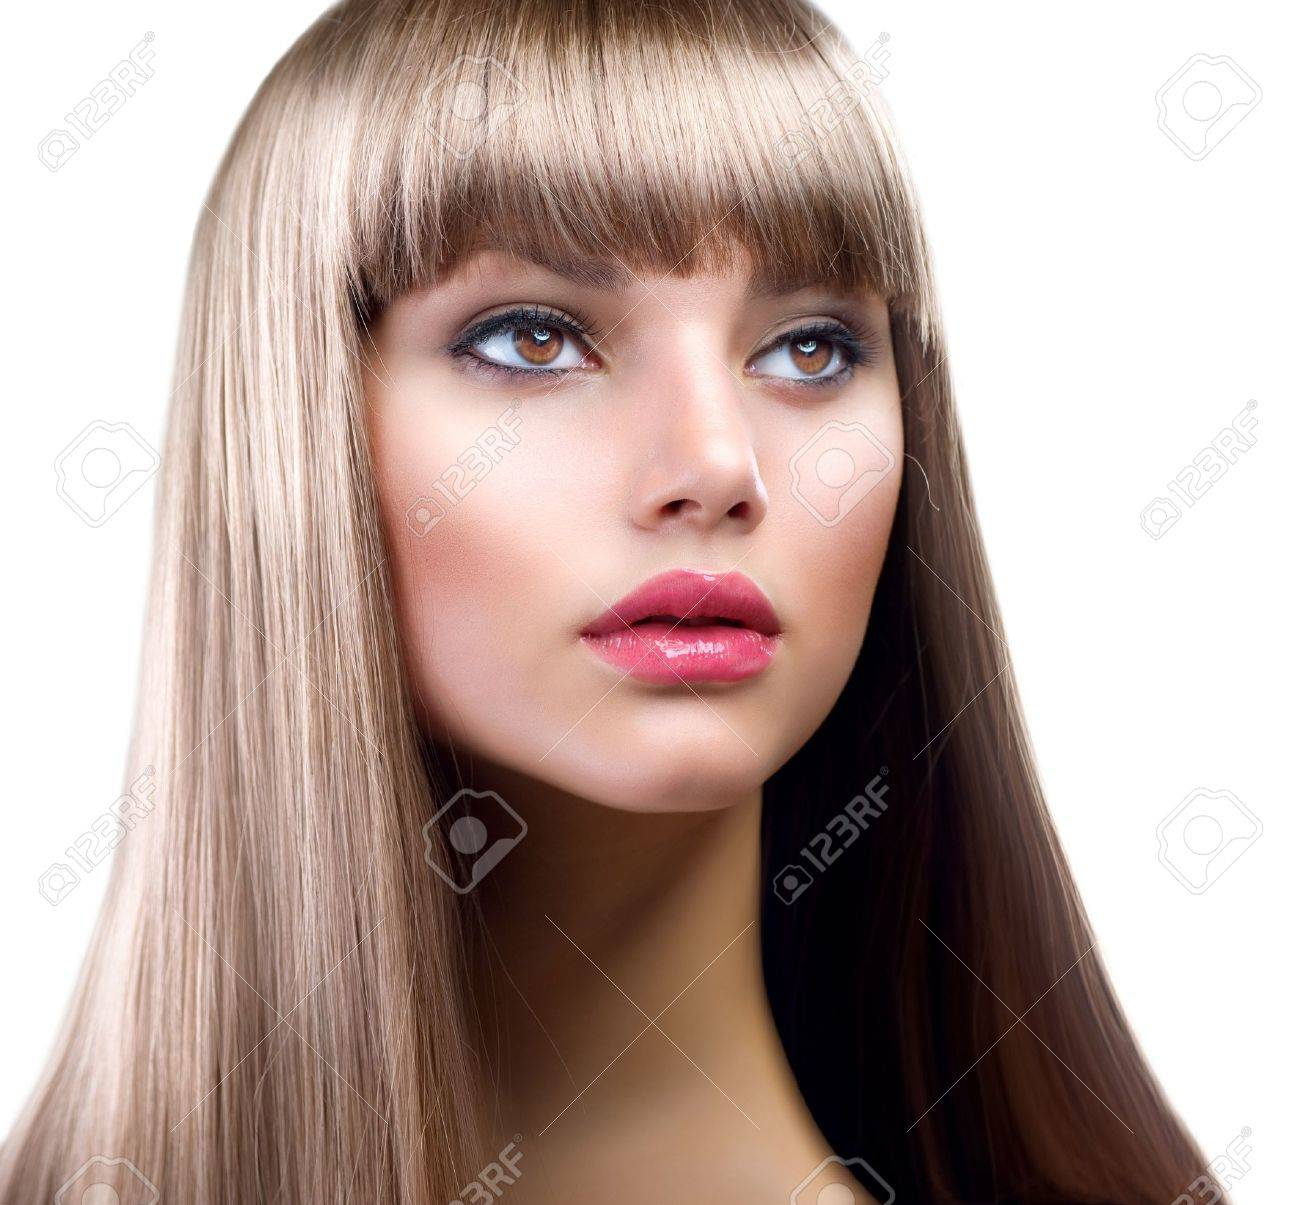 Beautiful Woman With Straight Long Hair Over White Stock Photo - 12382043